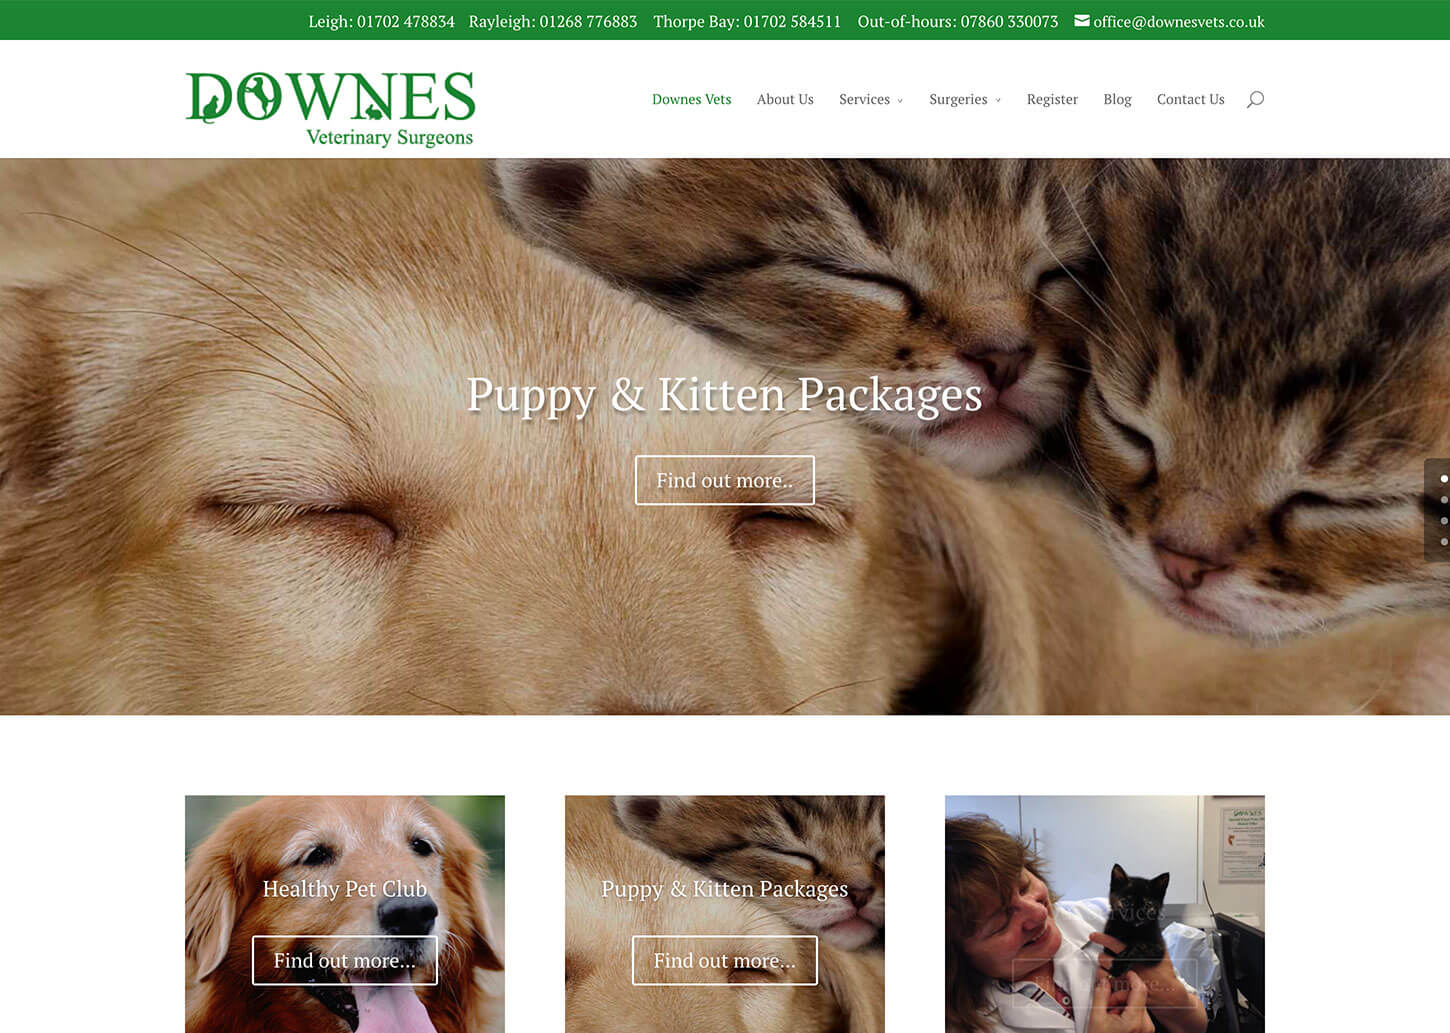 Vets website design for Downes Vets: Home page design